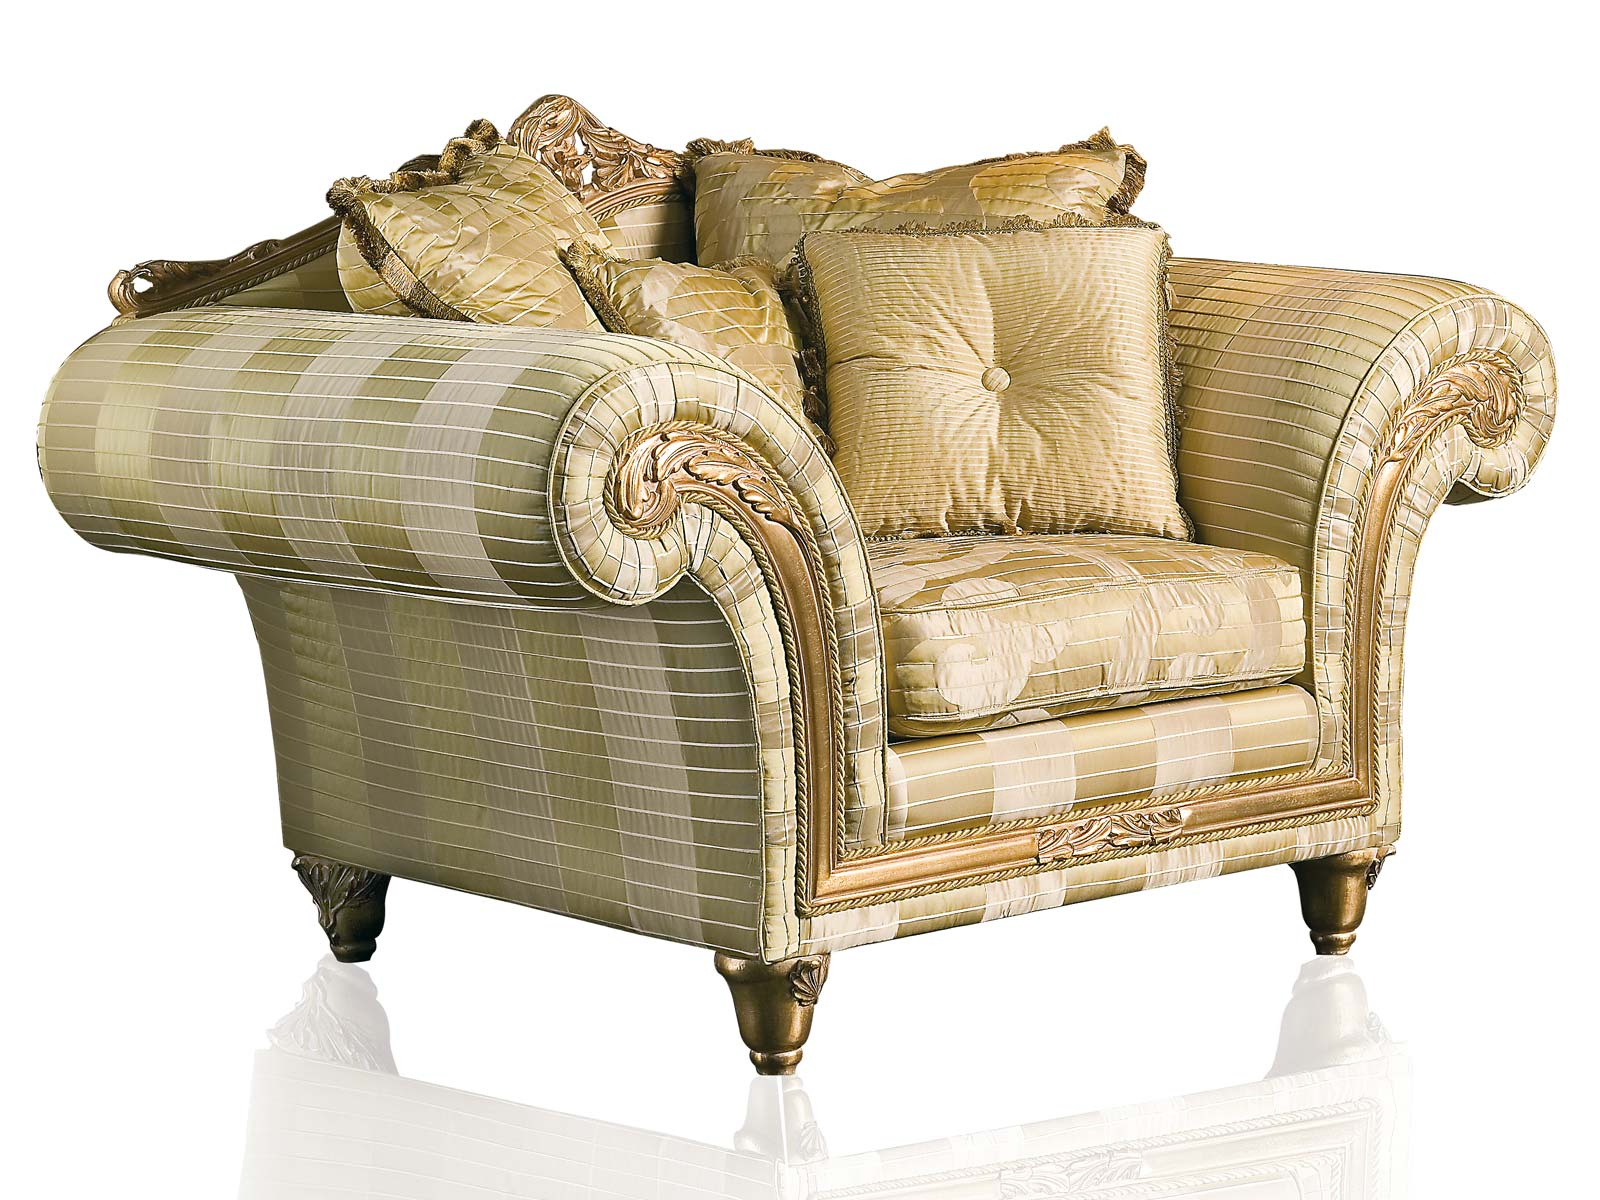 Outstanding Classic Sofa and Chair Design 1600 x 1200 · 269 kB · jpeg